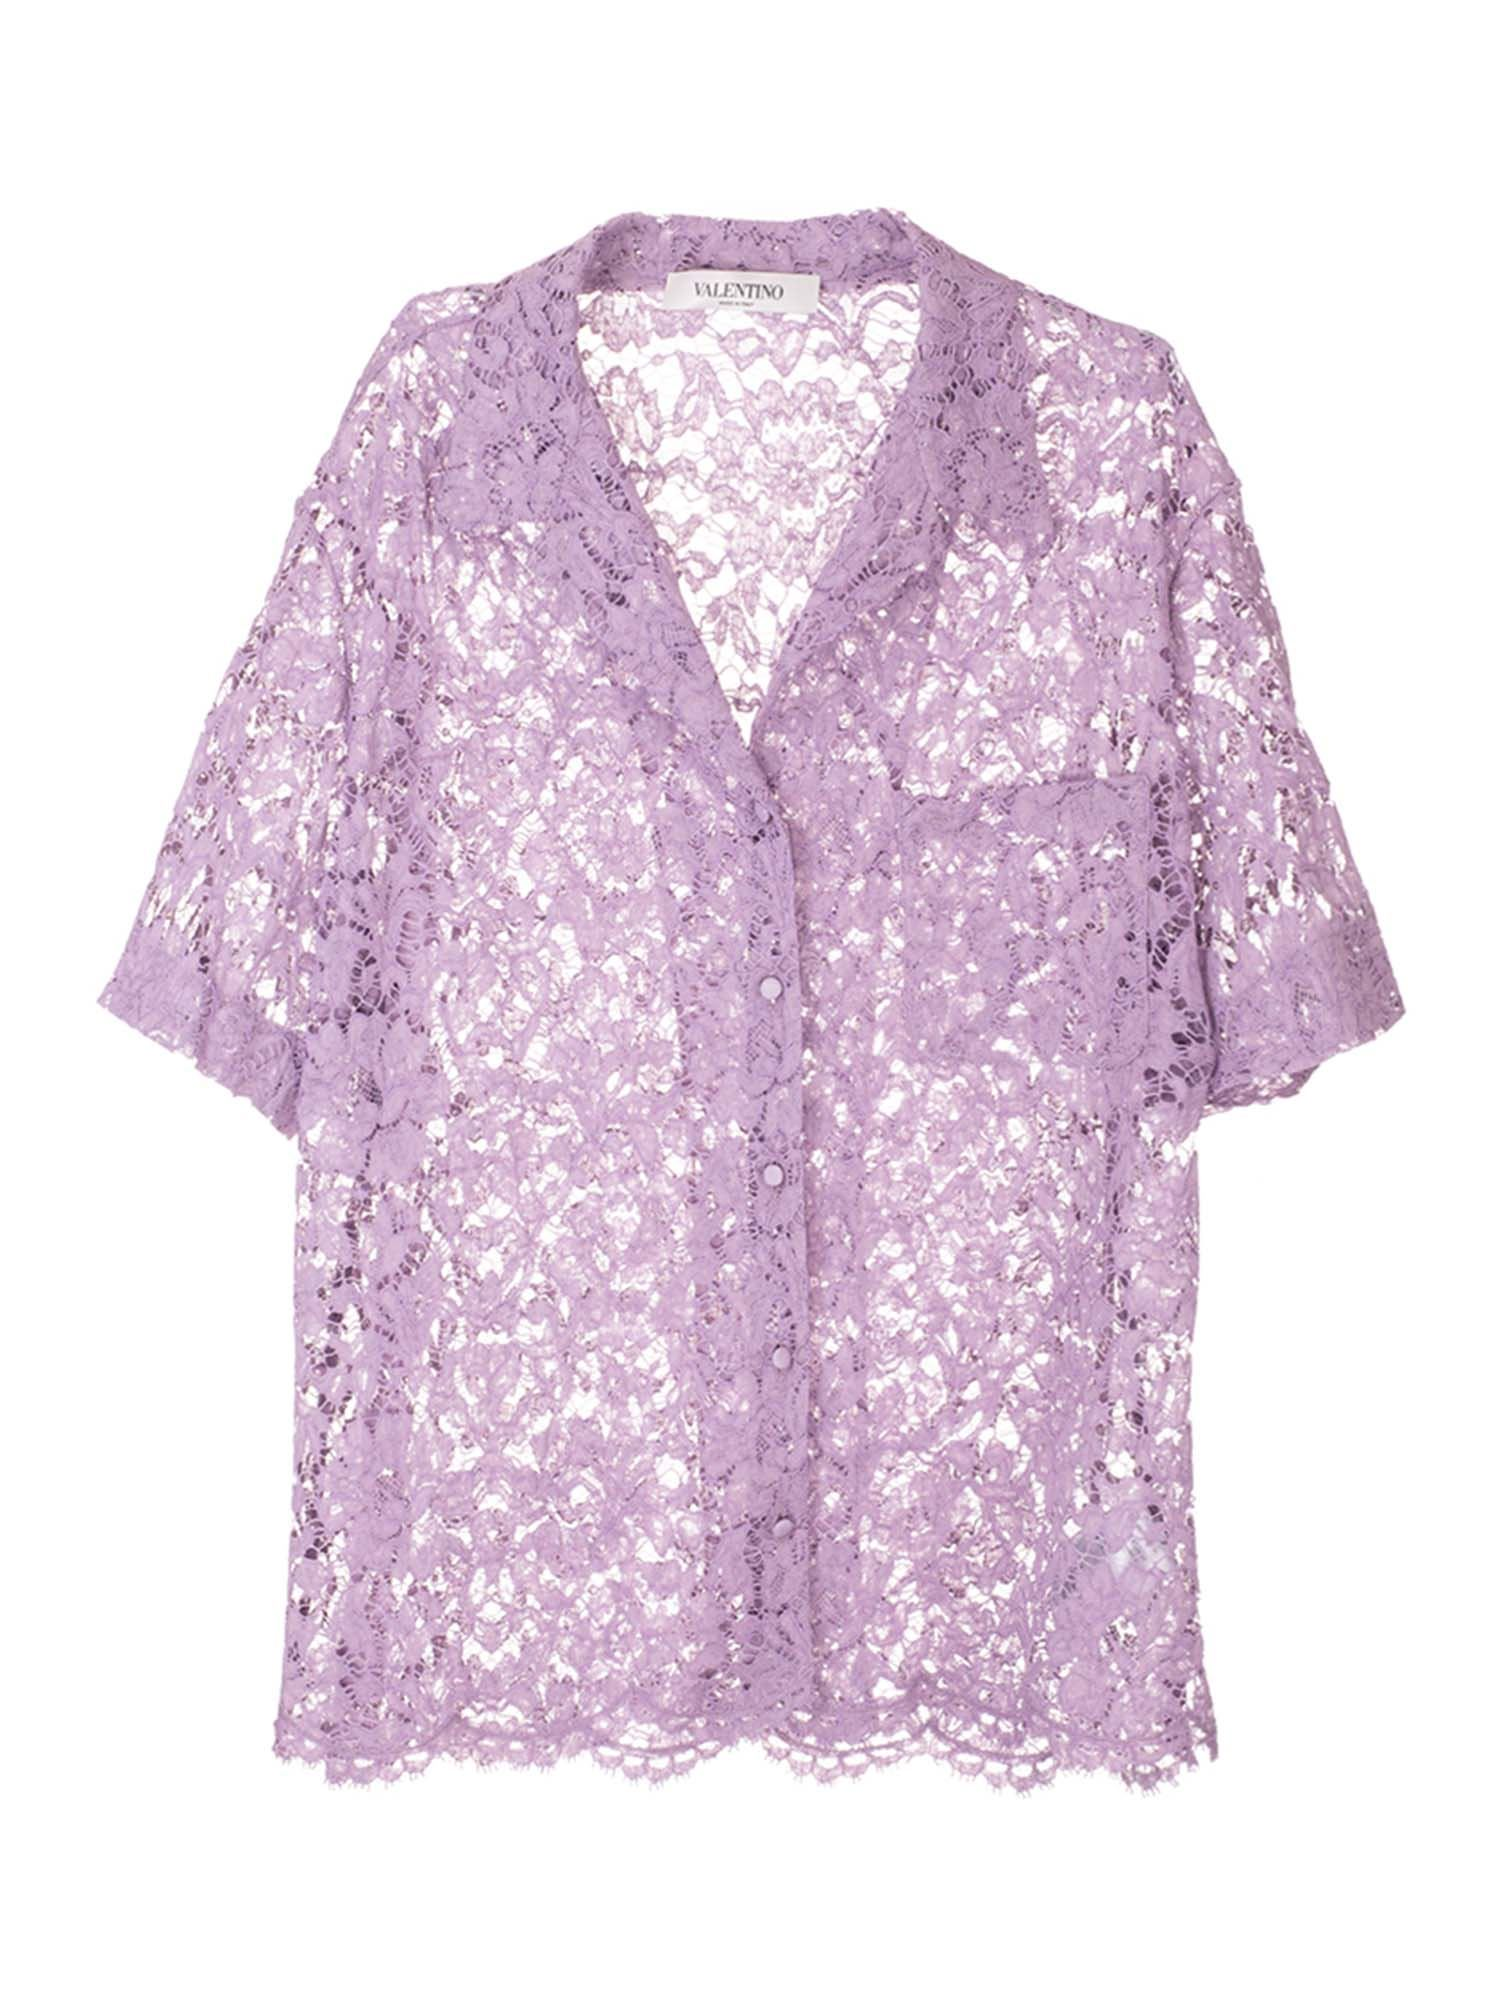 Valentino LACE SHIRT IN VIOLET